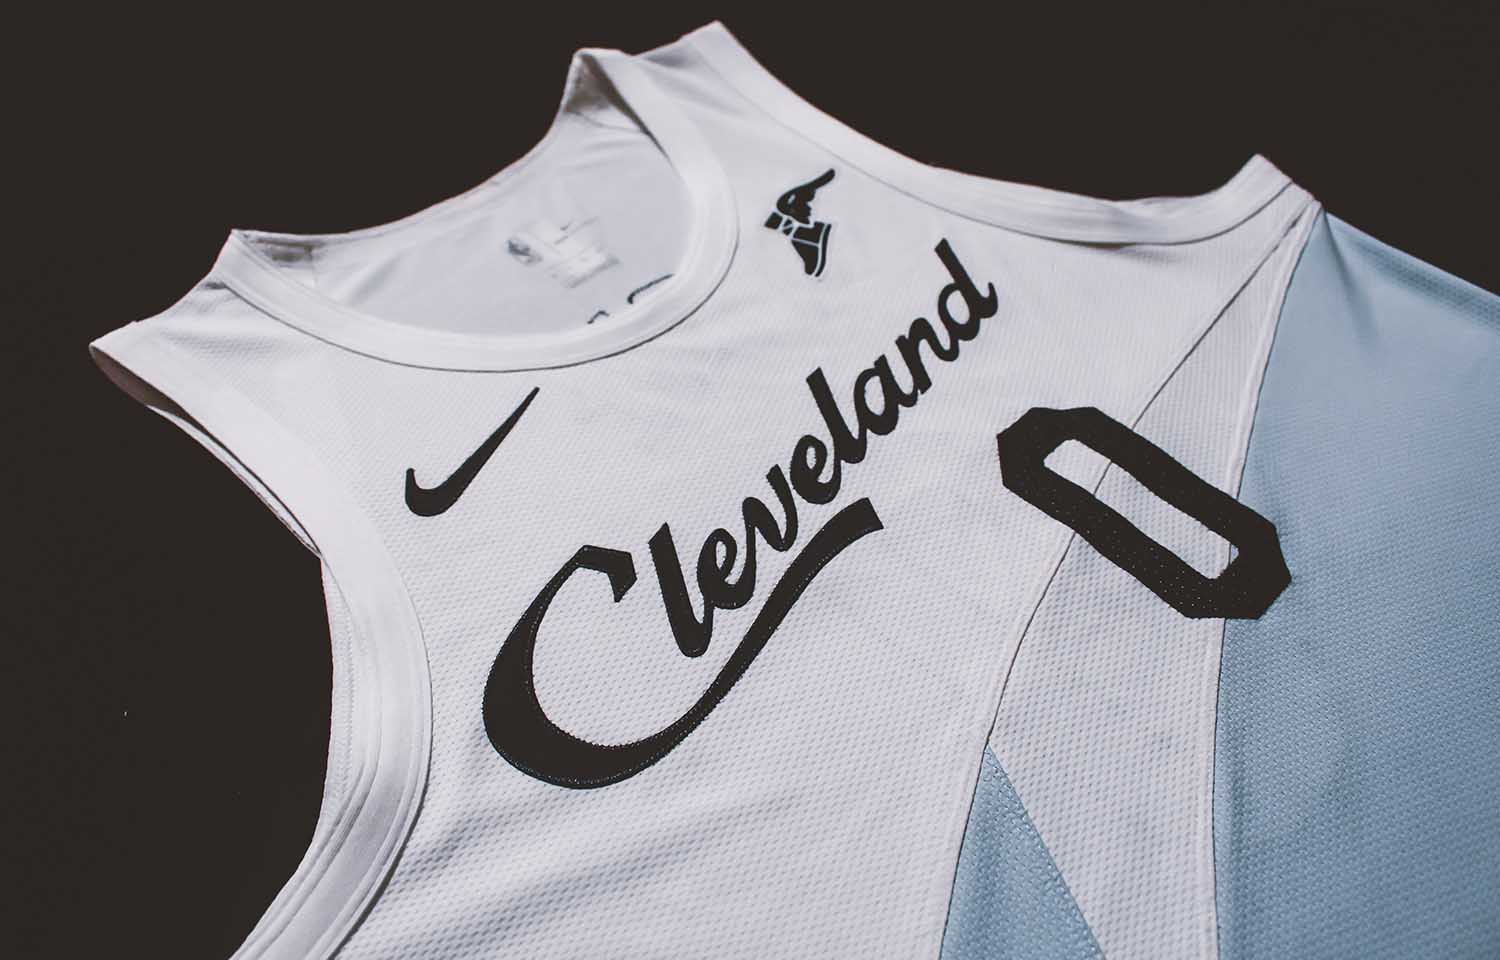 563b7db64f7b On Wednesday, the Cleveland Cavaliers gave the fans of the Wine and Gold a  little surprise as they unveiled their powder blue and white Earned Edition  ...